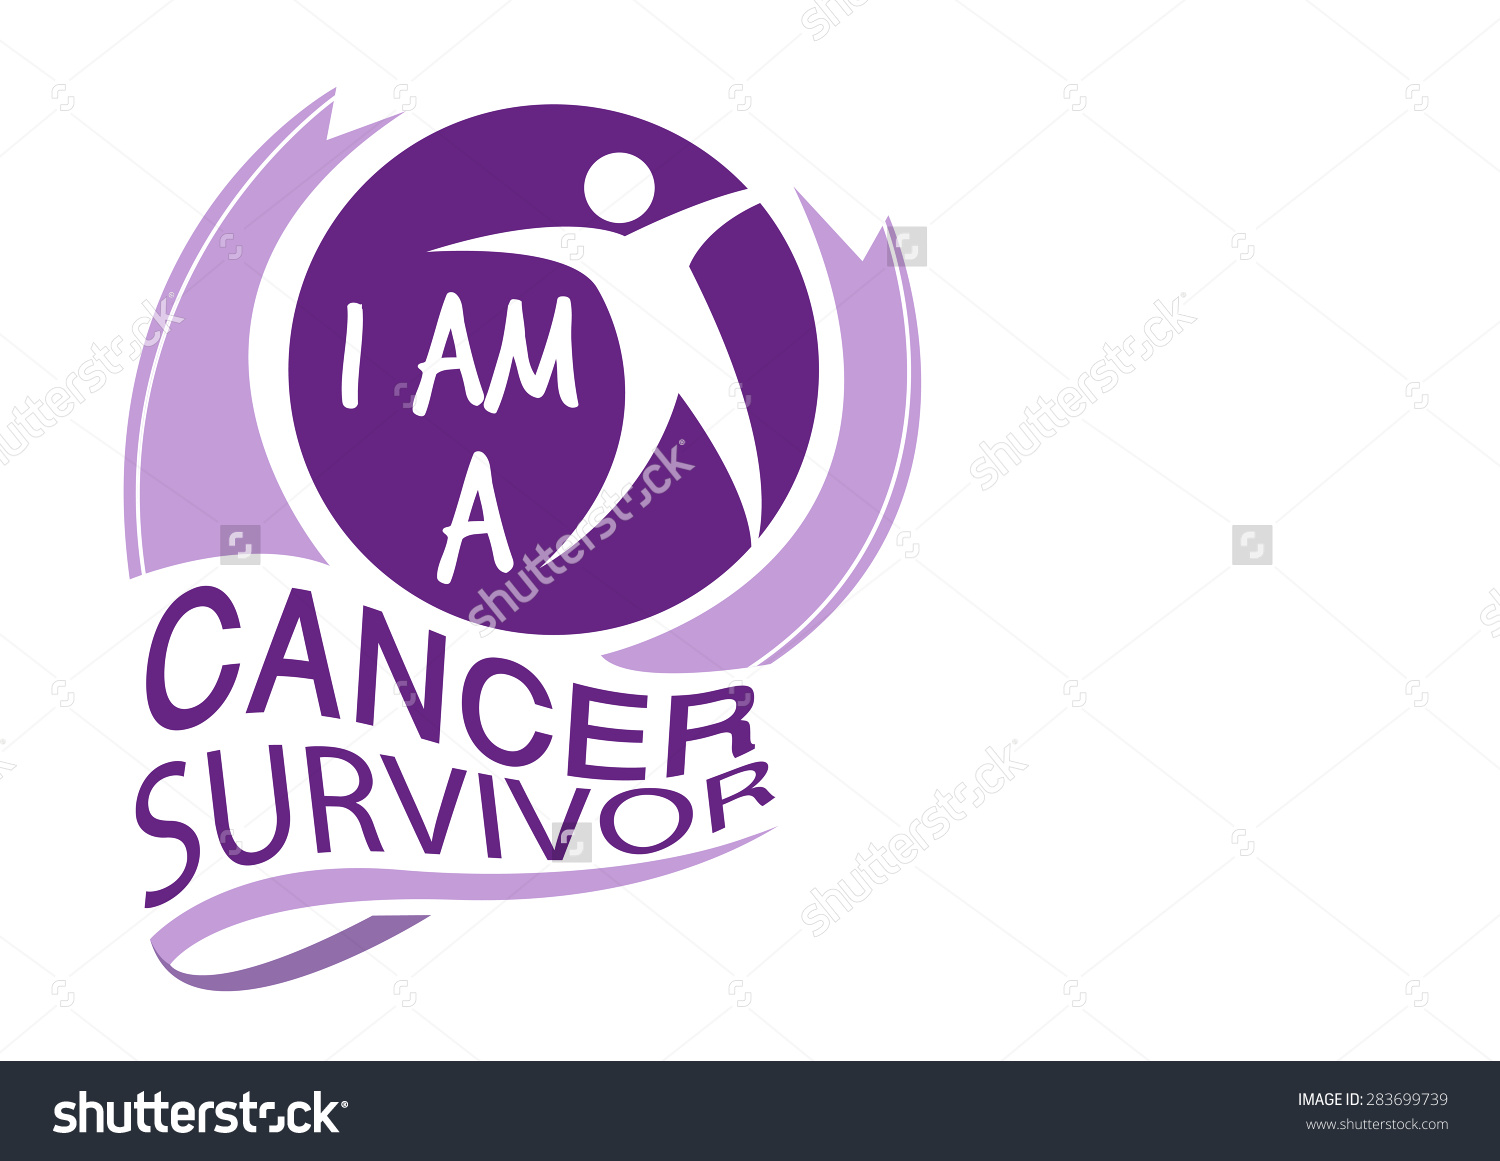 Cancer survivor clip art.